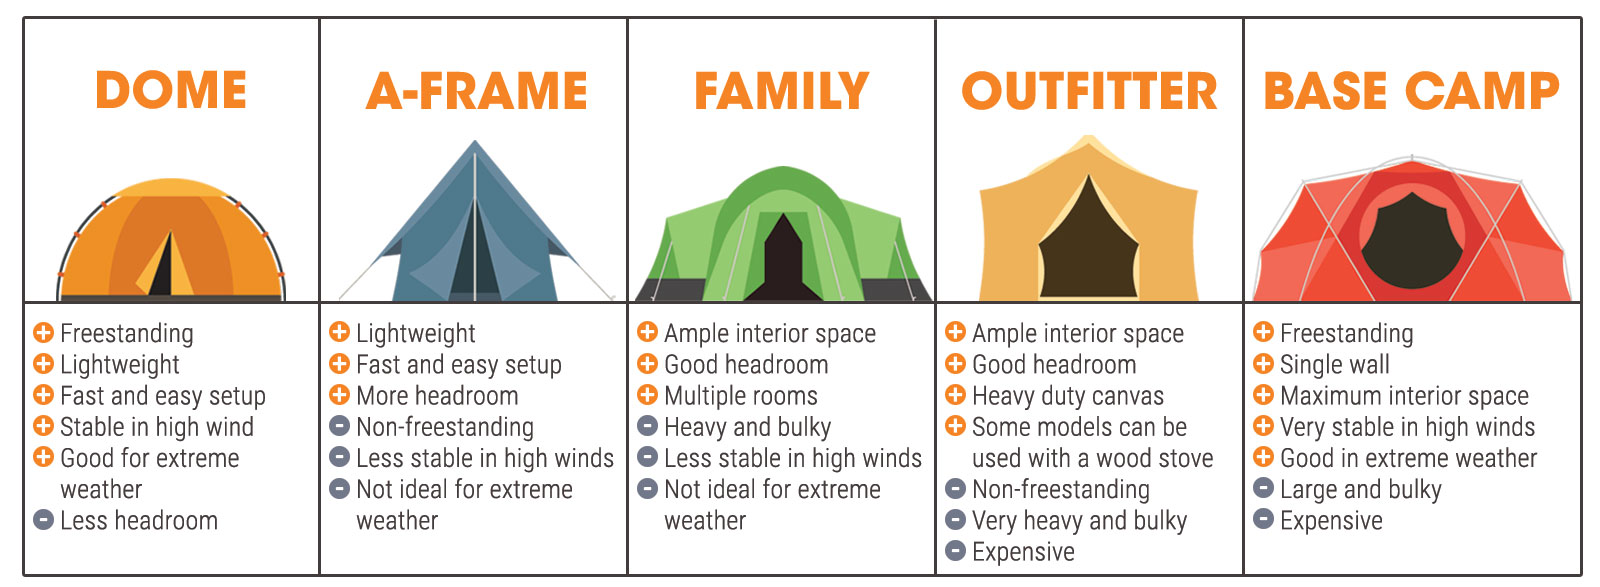 Freestanding Tents vs. Non-Freestanding Tents  sc 1 st  Sierra Trading Post & The Tent Guide: Sierra Trading Post